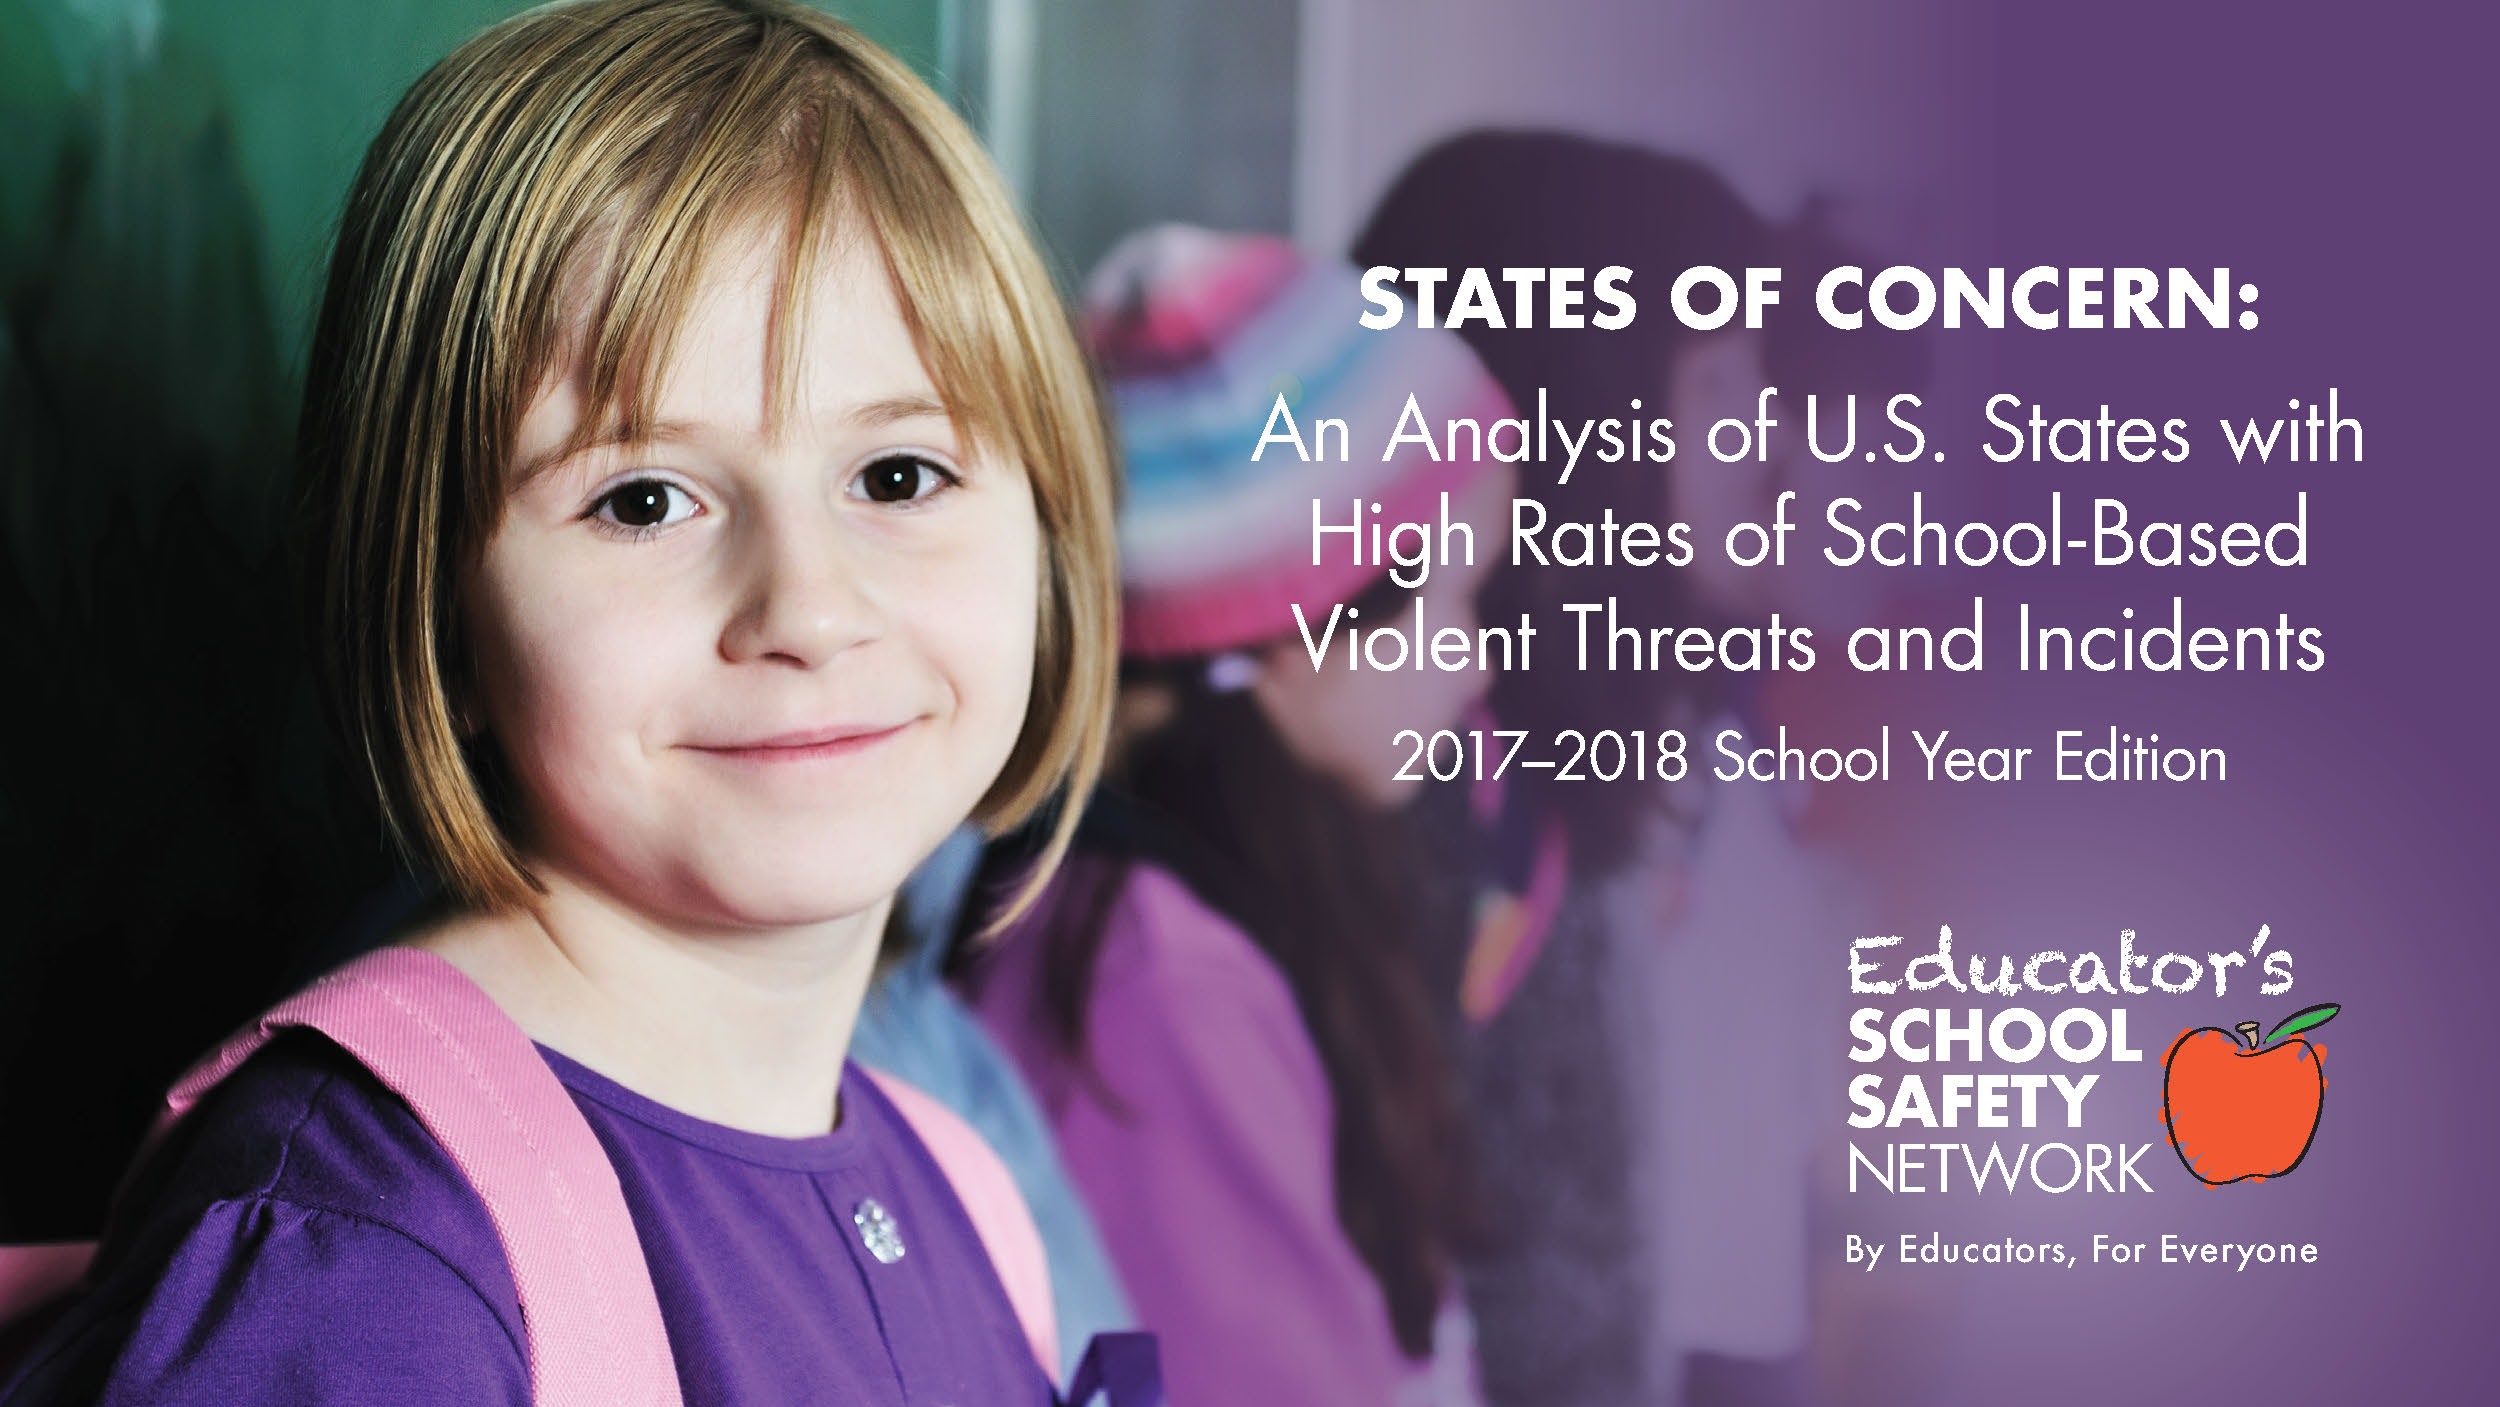 States of Concern — The Educator's School Safety Network